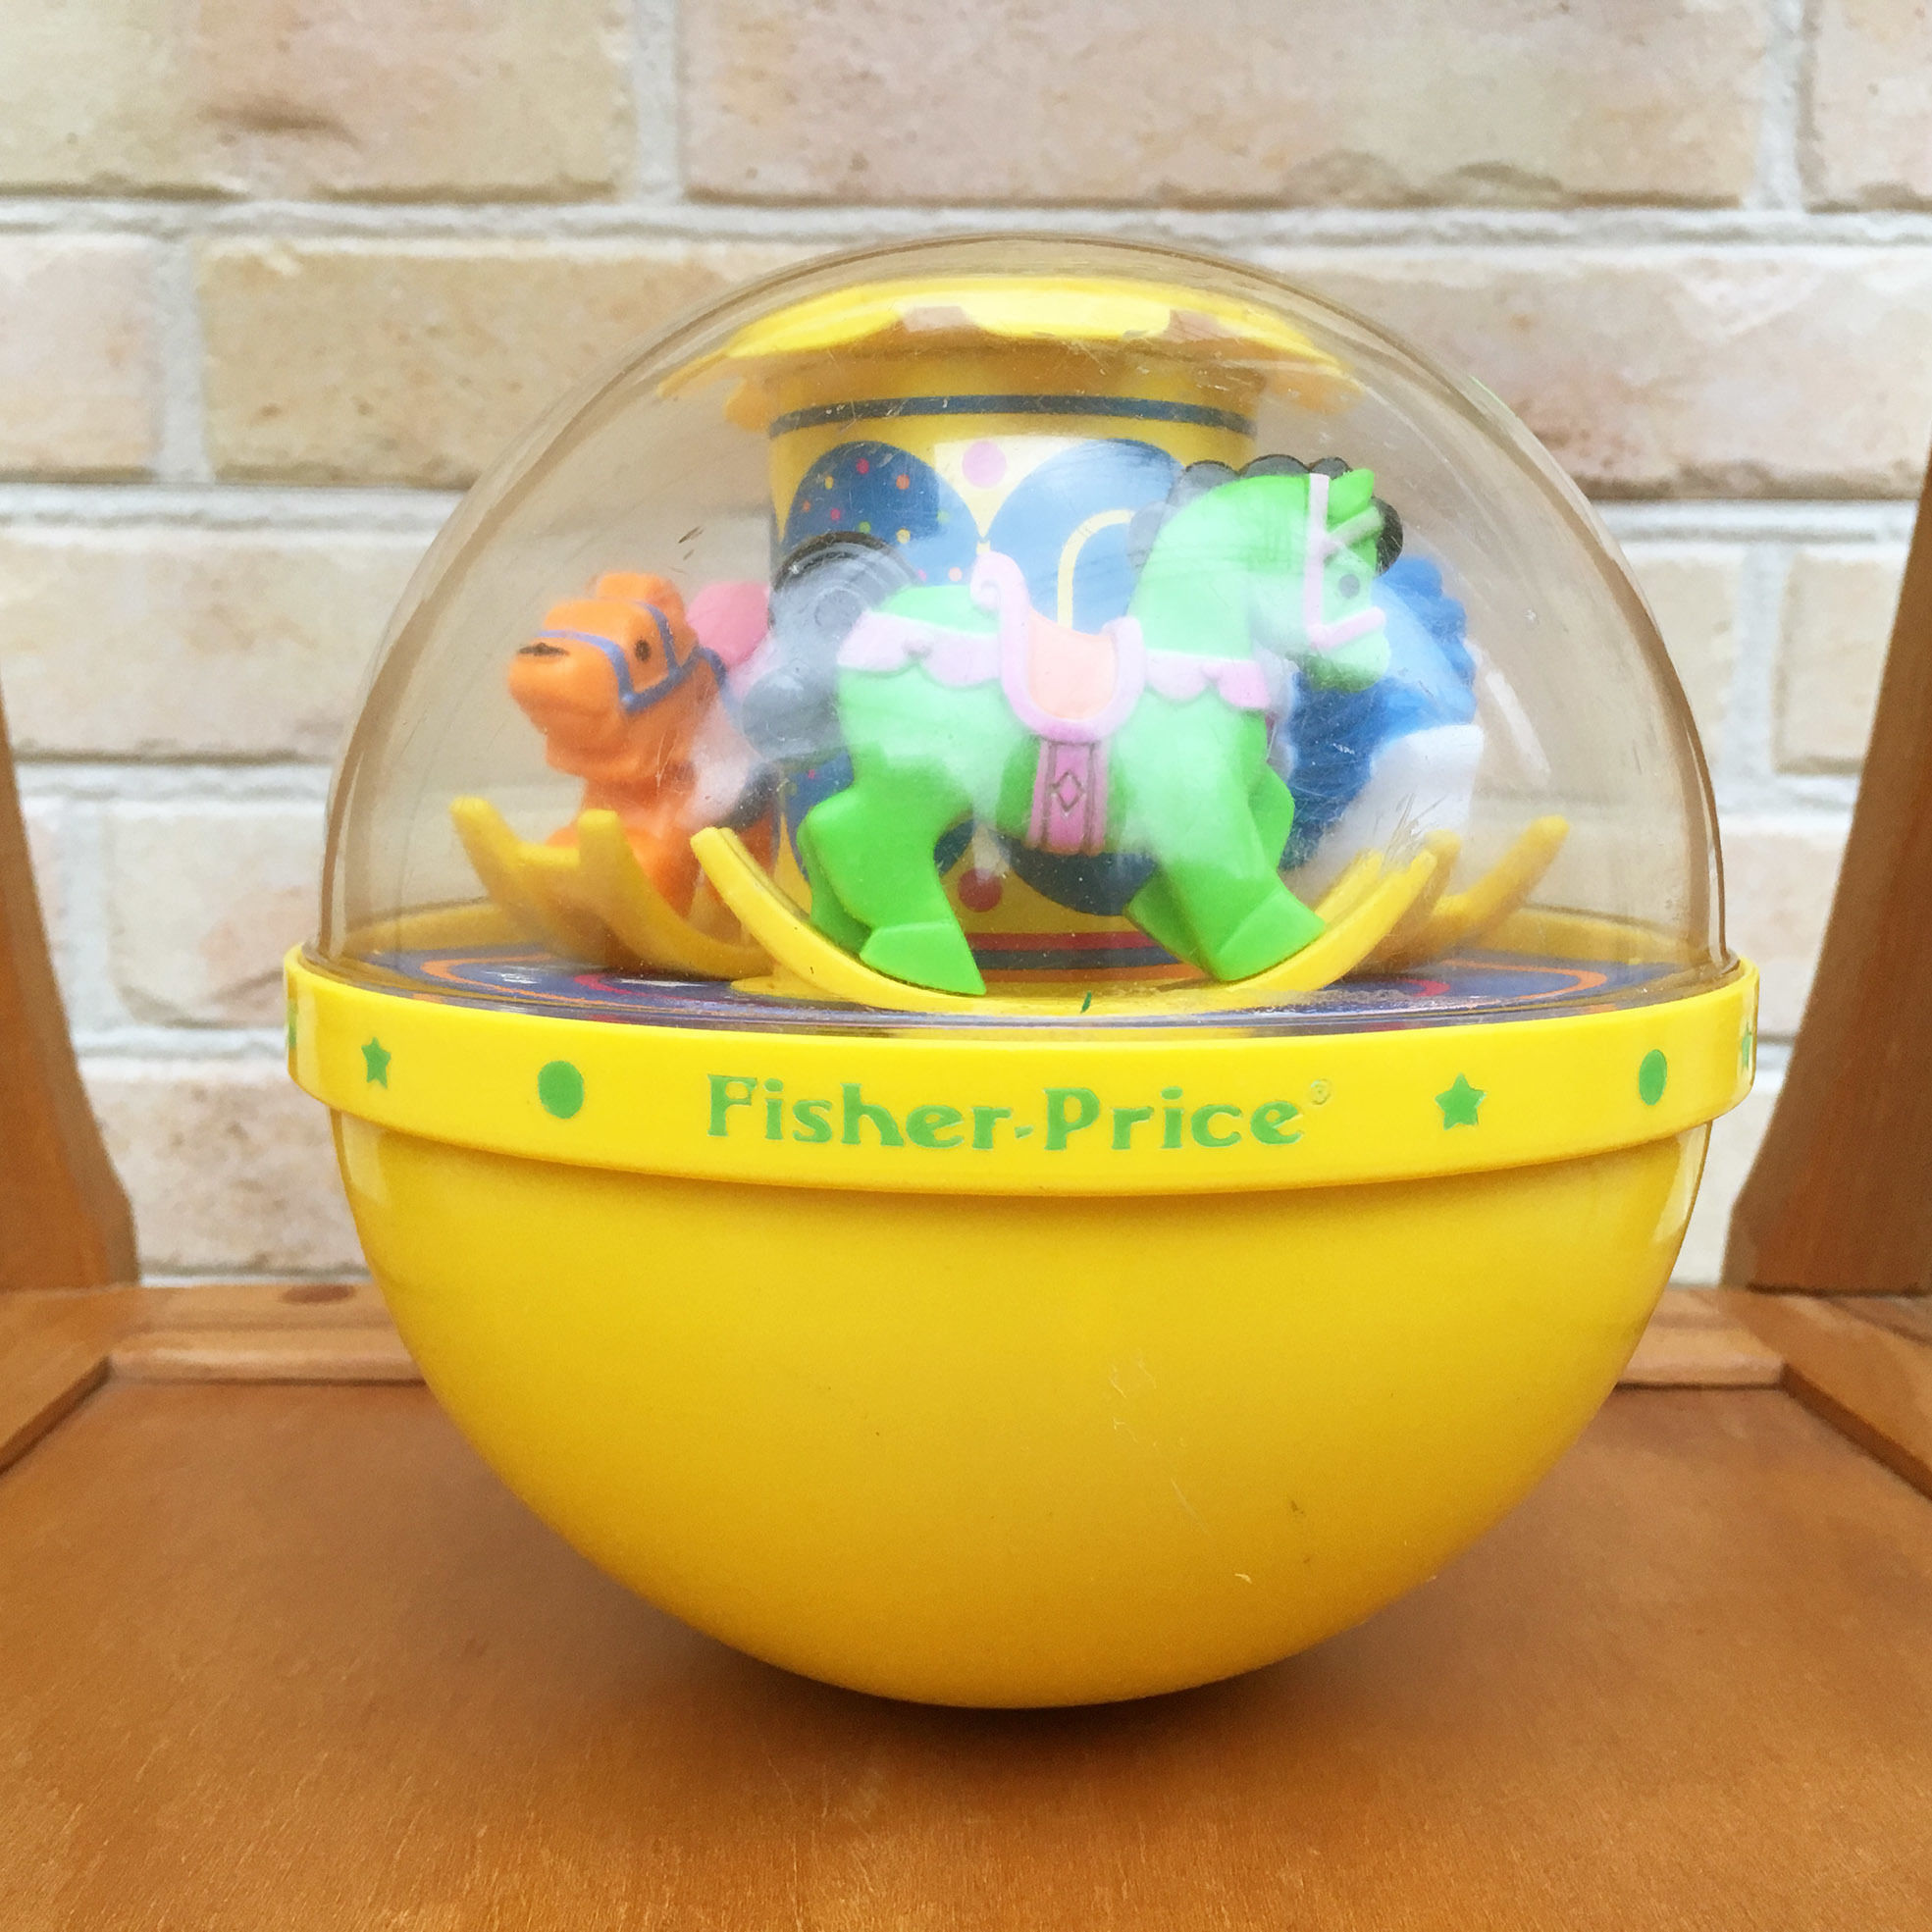 Fisher Price Rolly Poly Chime Bell/フィッシャープライス ローリーポーリー・チャイムベル/171205-1